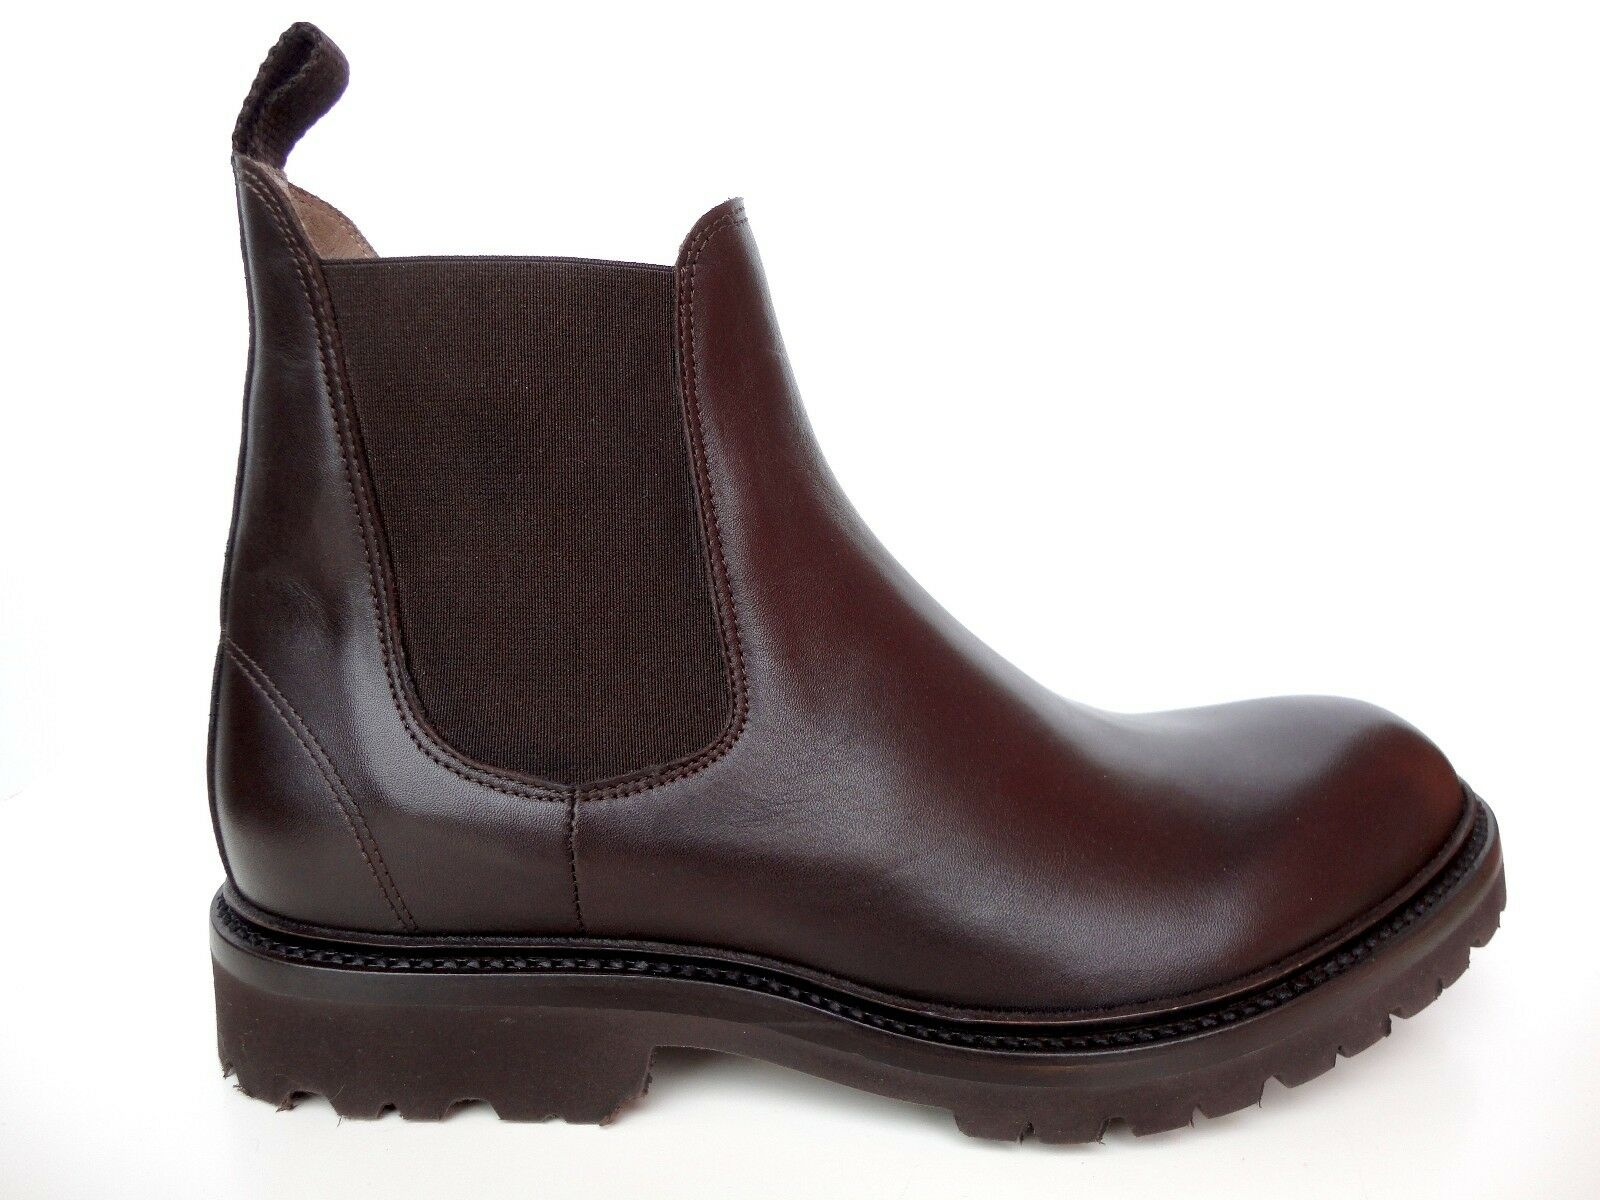 MADE TO ORDER ITALY SHOES BOOTS BEATLE REAL LEATHER RUBBER SOLE BROWN 7-21 40-56